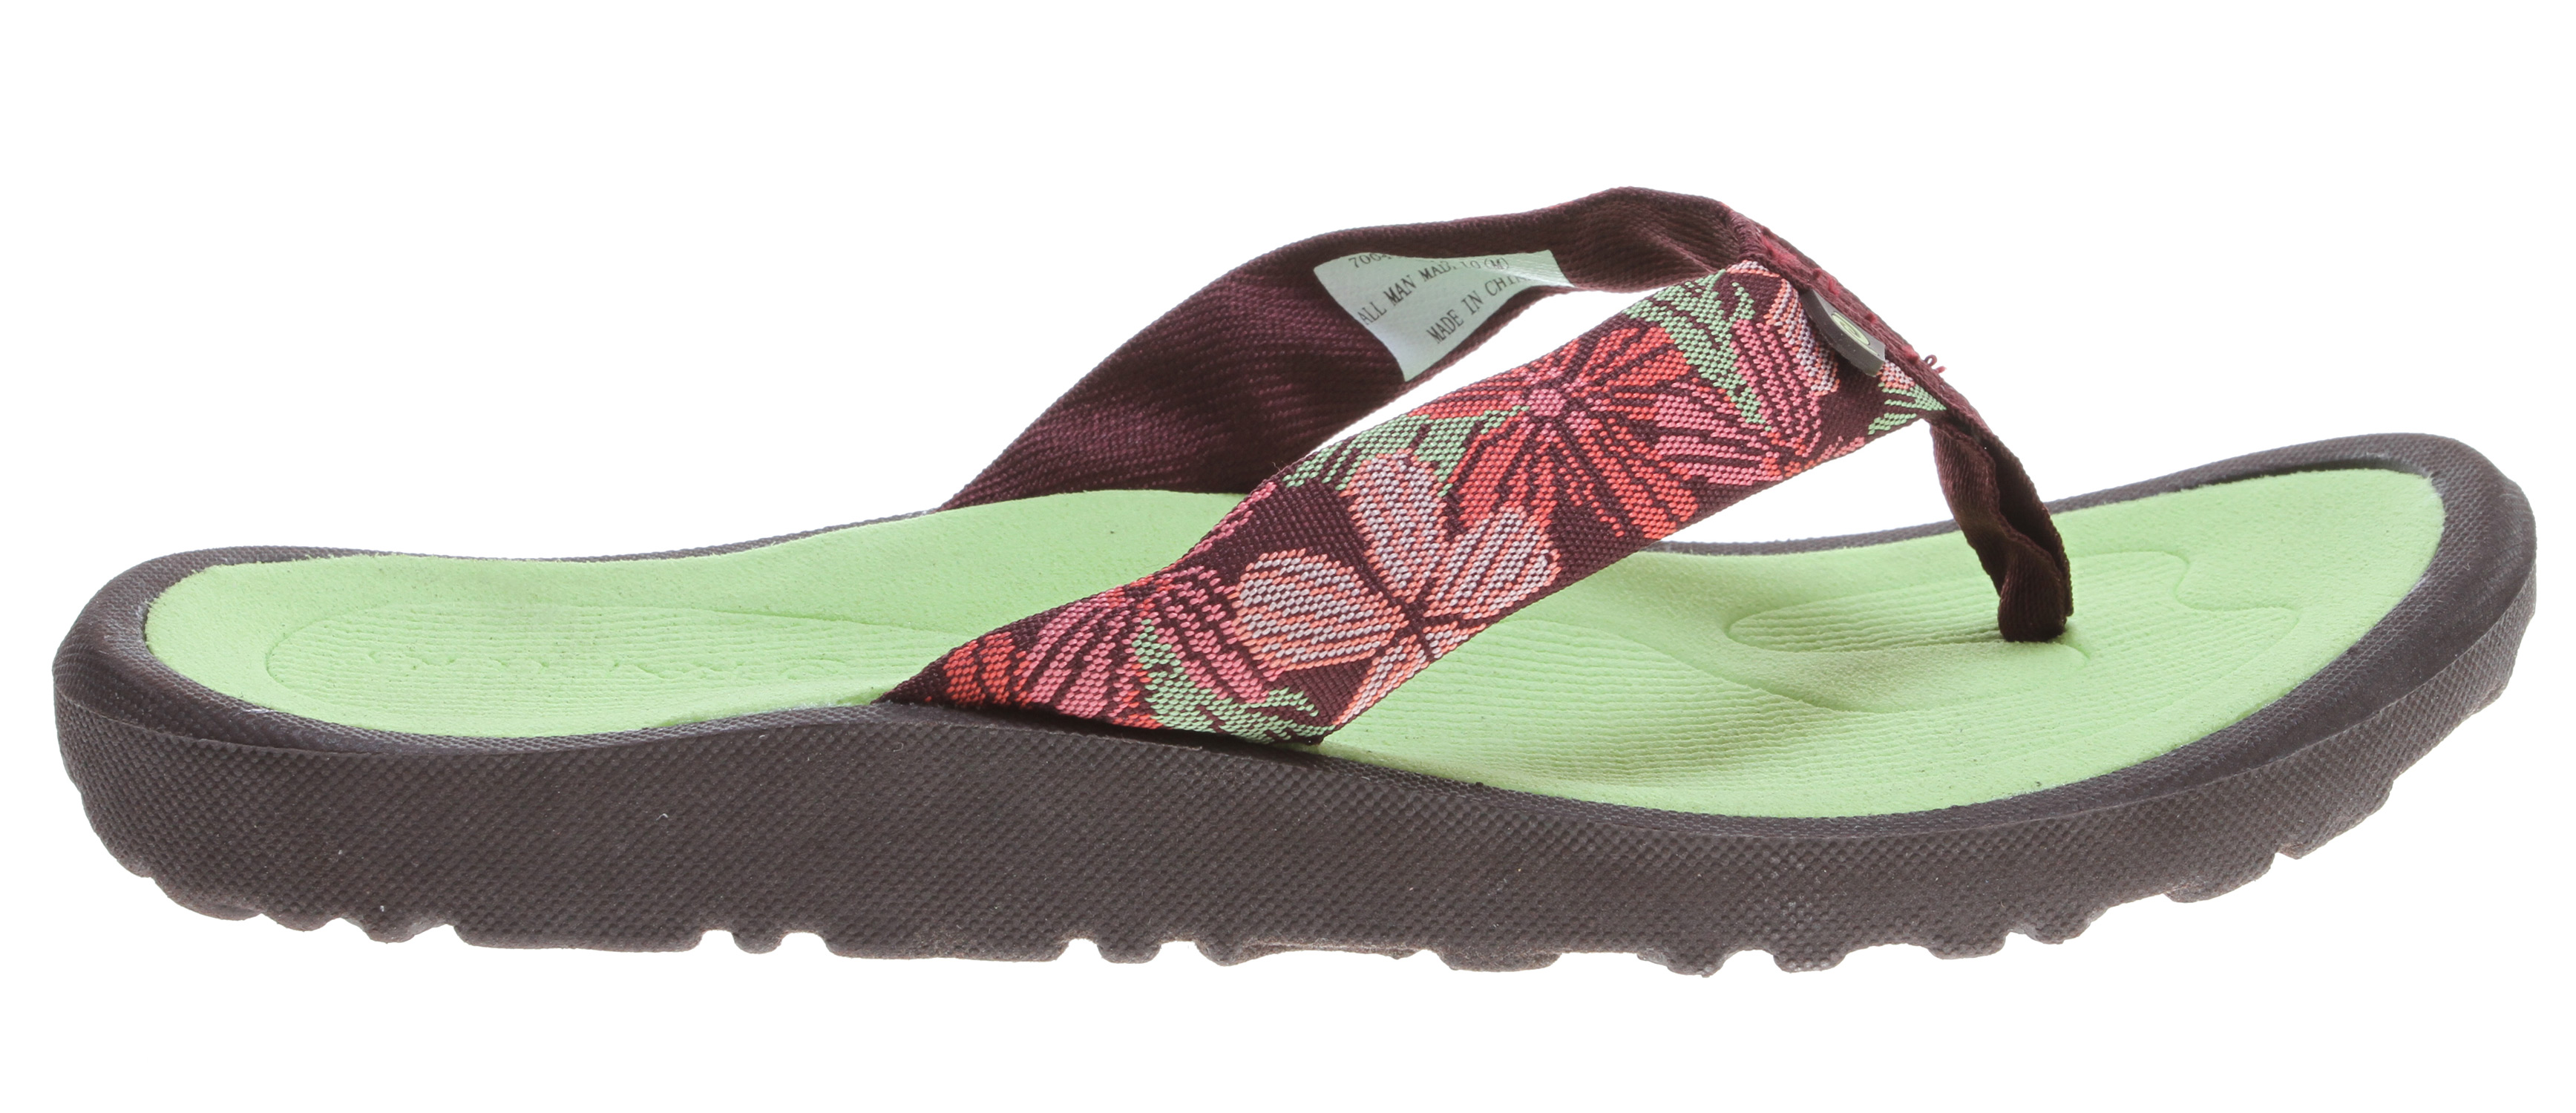 Surf Key Features of the Rafters Breeze Sandals: Ultra lightweight with more arch support and heel cushioning Nylon upper that's soft to the foot, longer wearing BOUNCE footbed allows for great resiliency in every step - $16.95